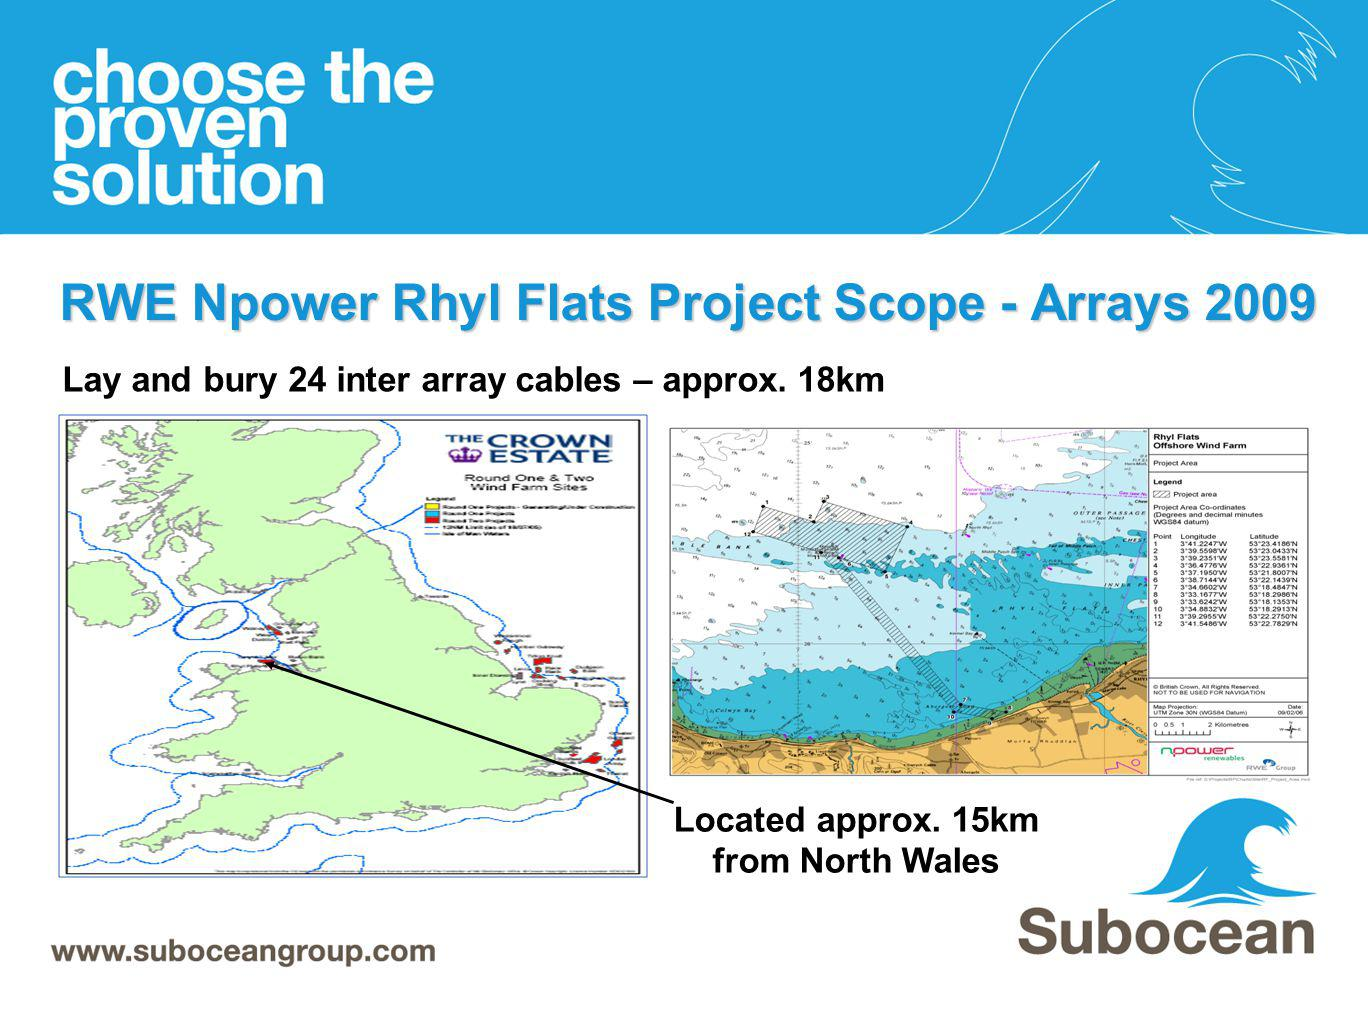 RWE Npower Rhyl Flats Project Scope - Arrays 2009